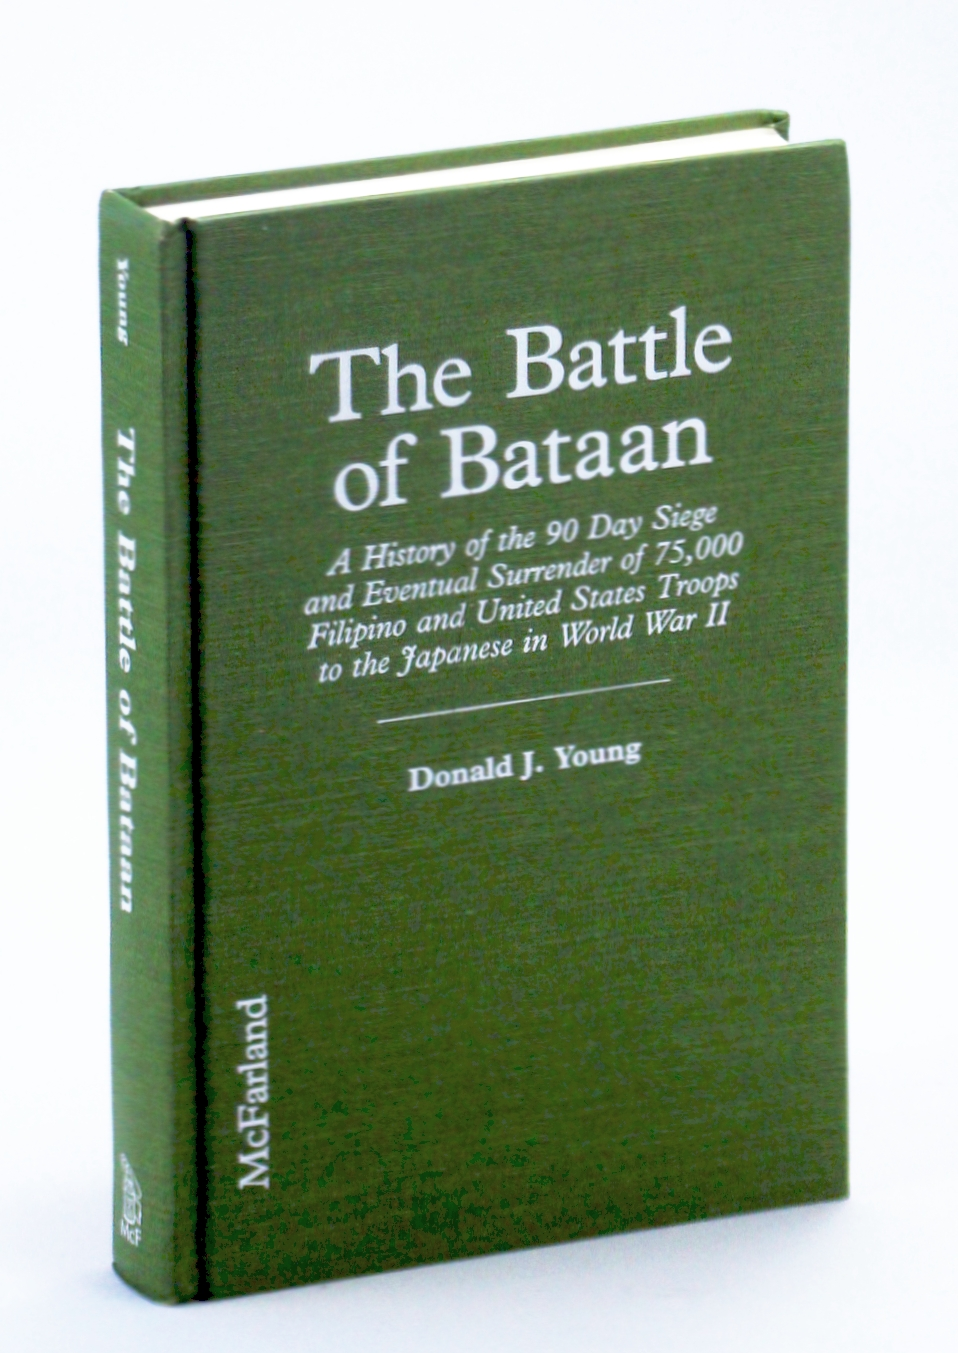 Image for The Battle of Bataan: A History of the 90 Day Siege and Eventual Surrender of 75,000 Filipino and United States Troops to the Japanese in World War